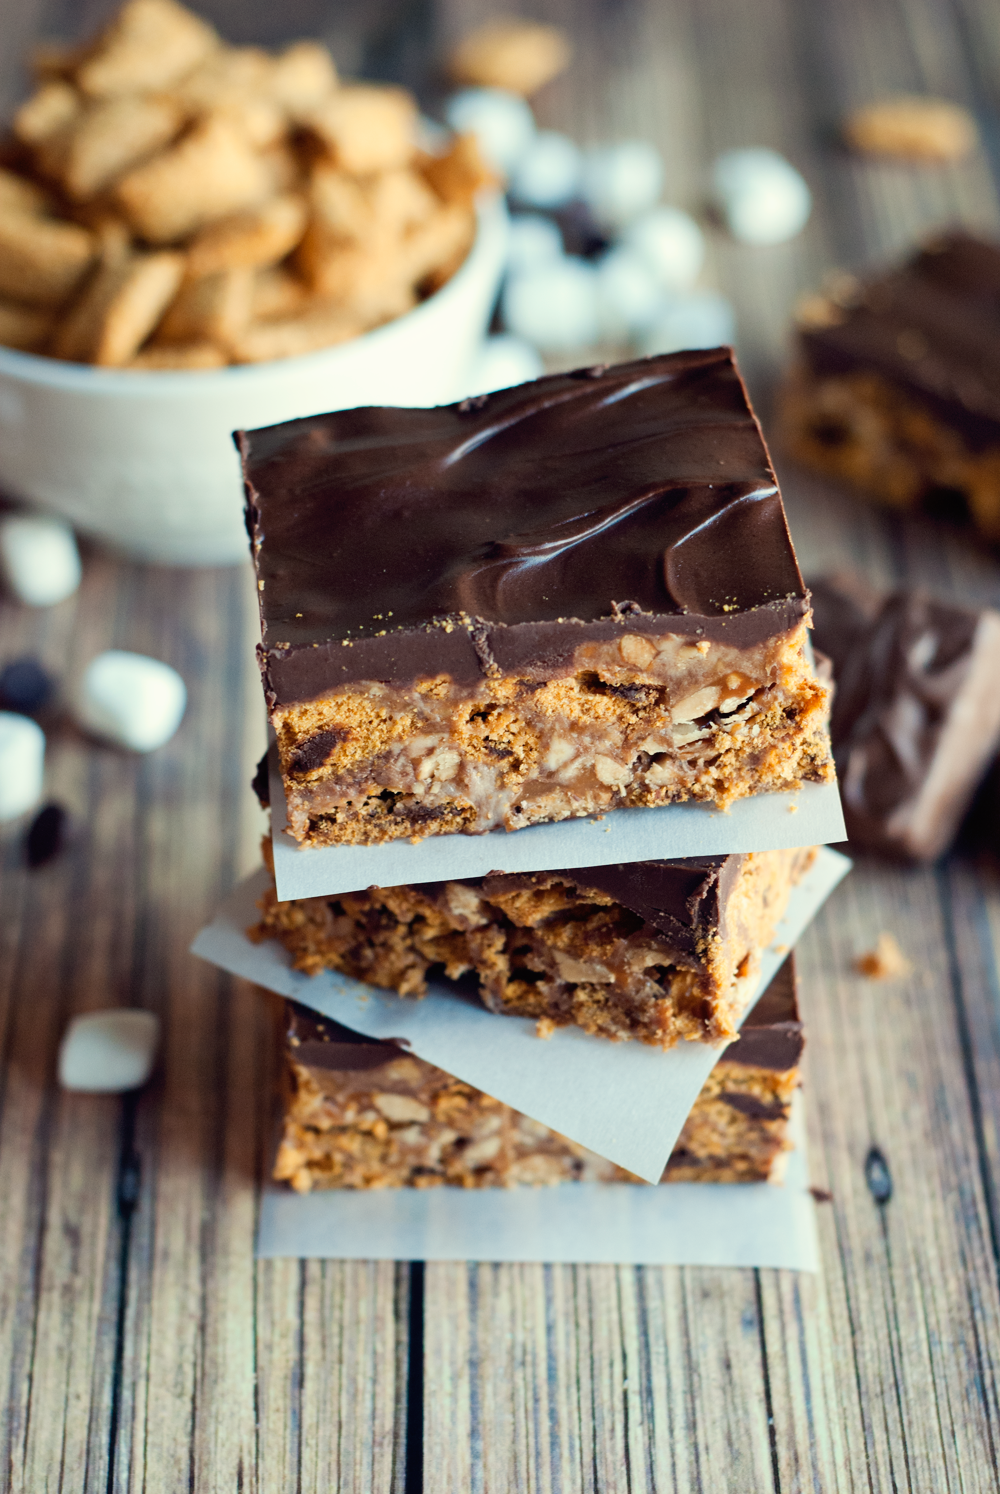 Snickers Cereal Bars by Three in Three #Chocolate4TheWin #shop #cbias